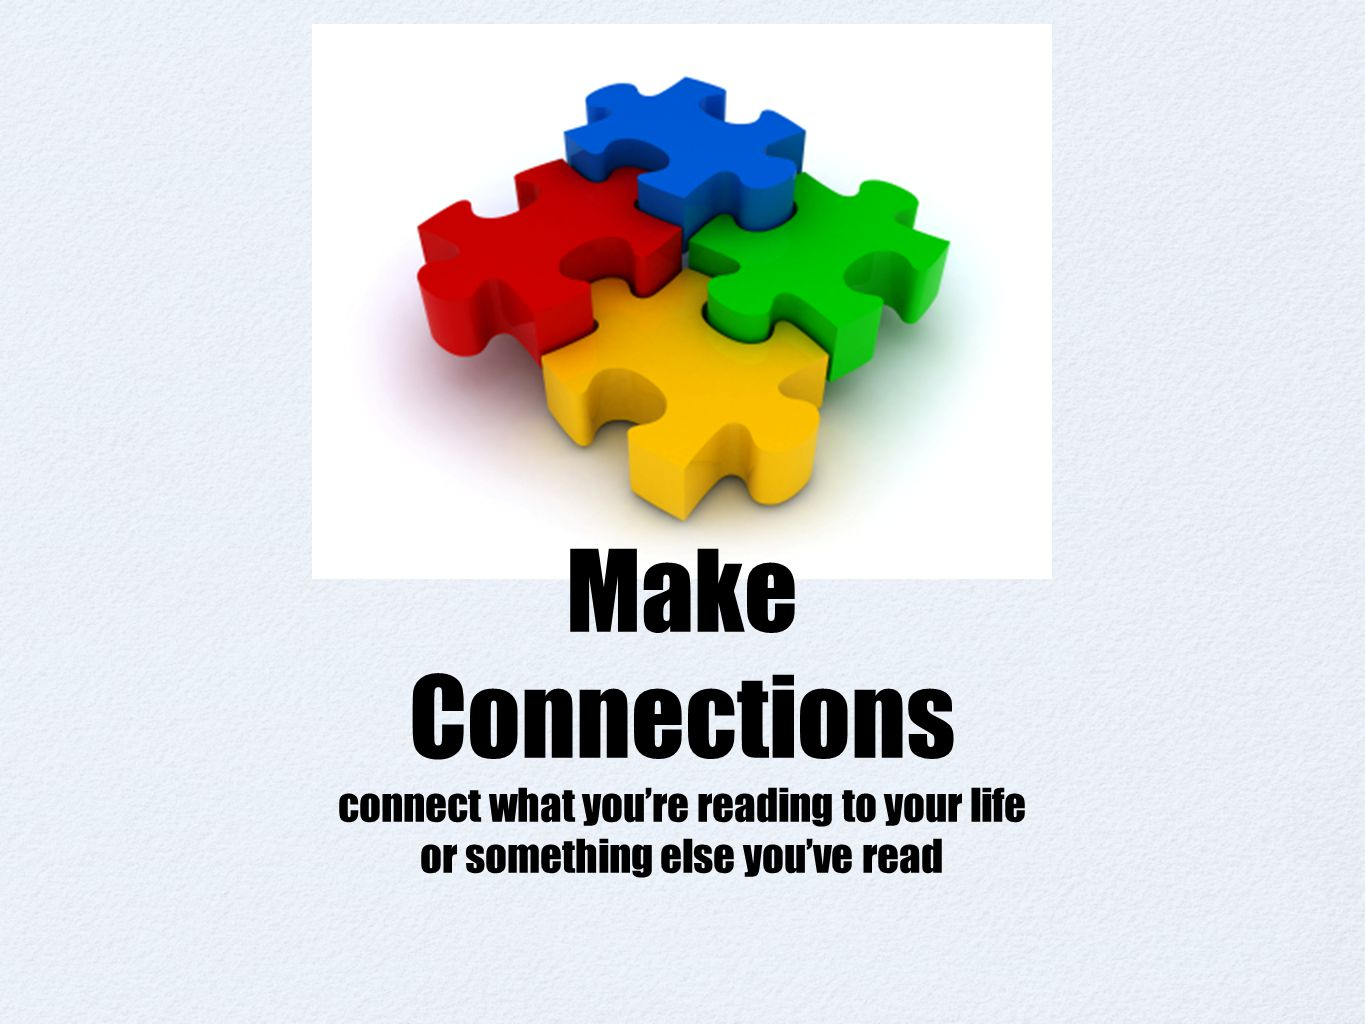 Make Connections connect what you're reading to your life